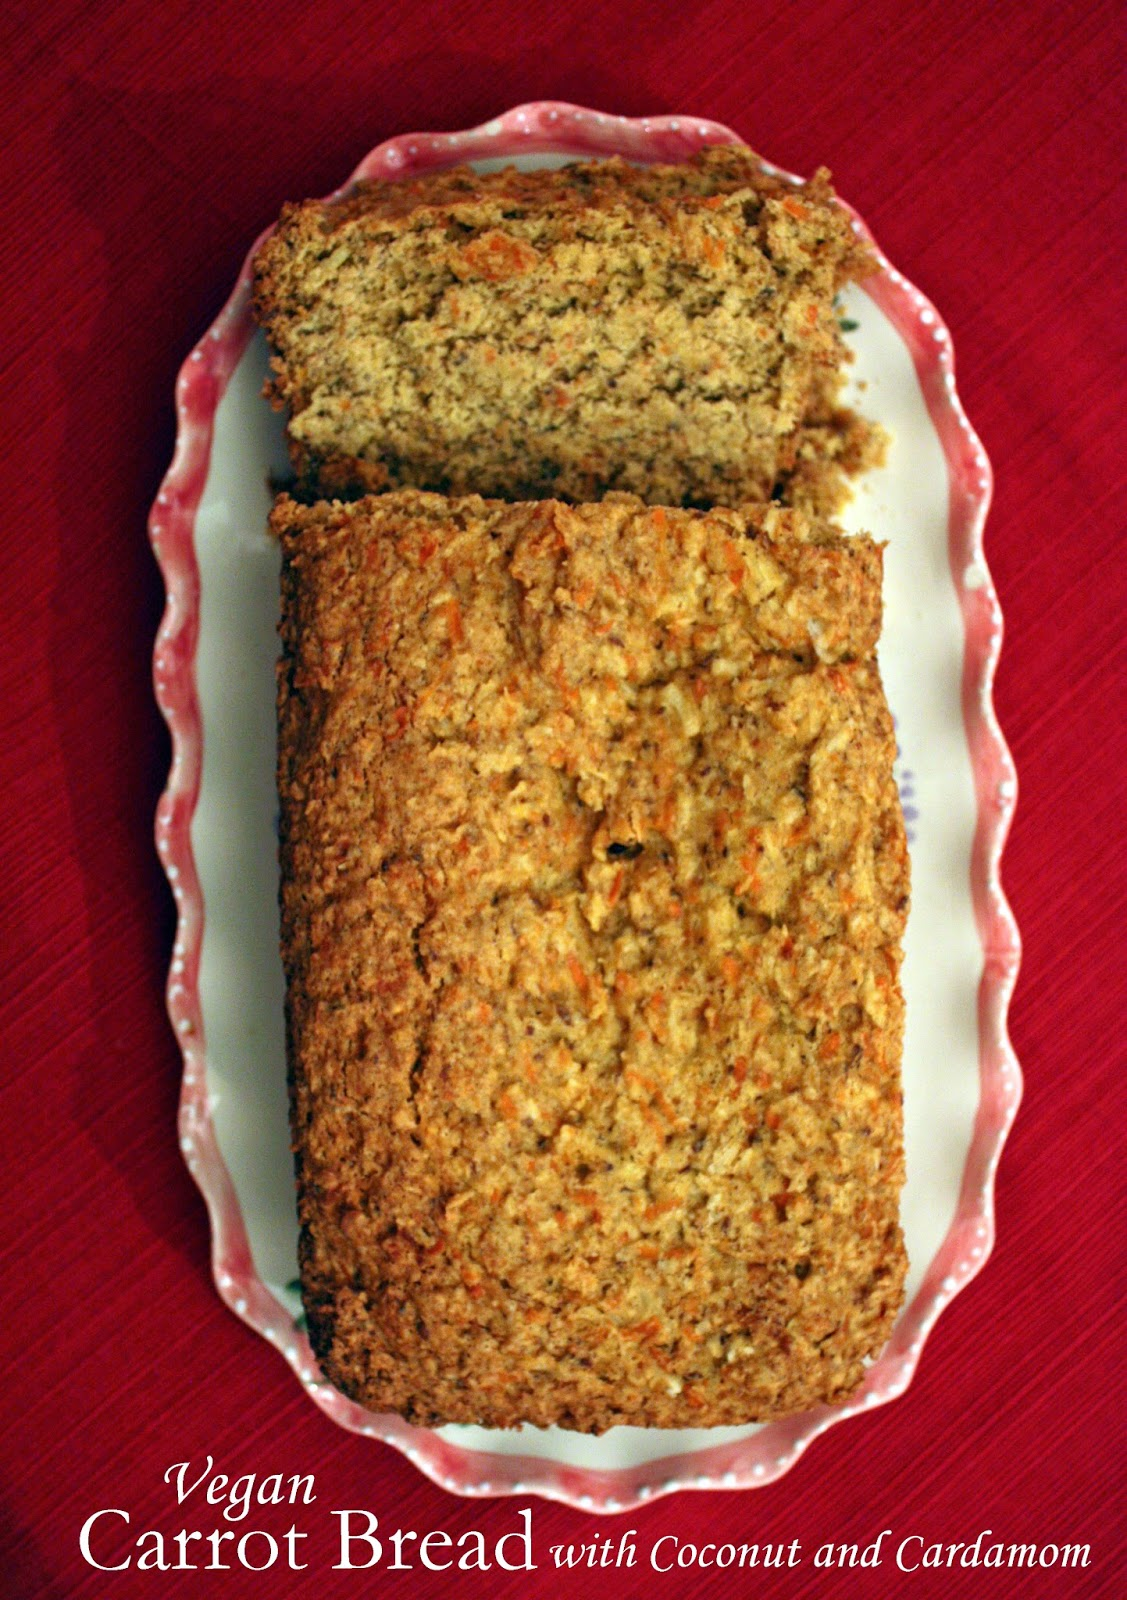 vegan carrot bread with cardamom and coconut